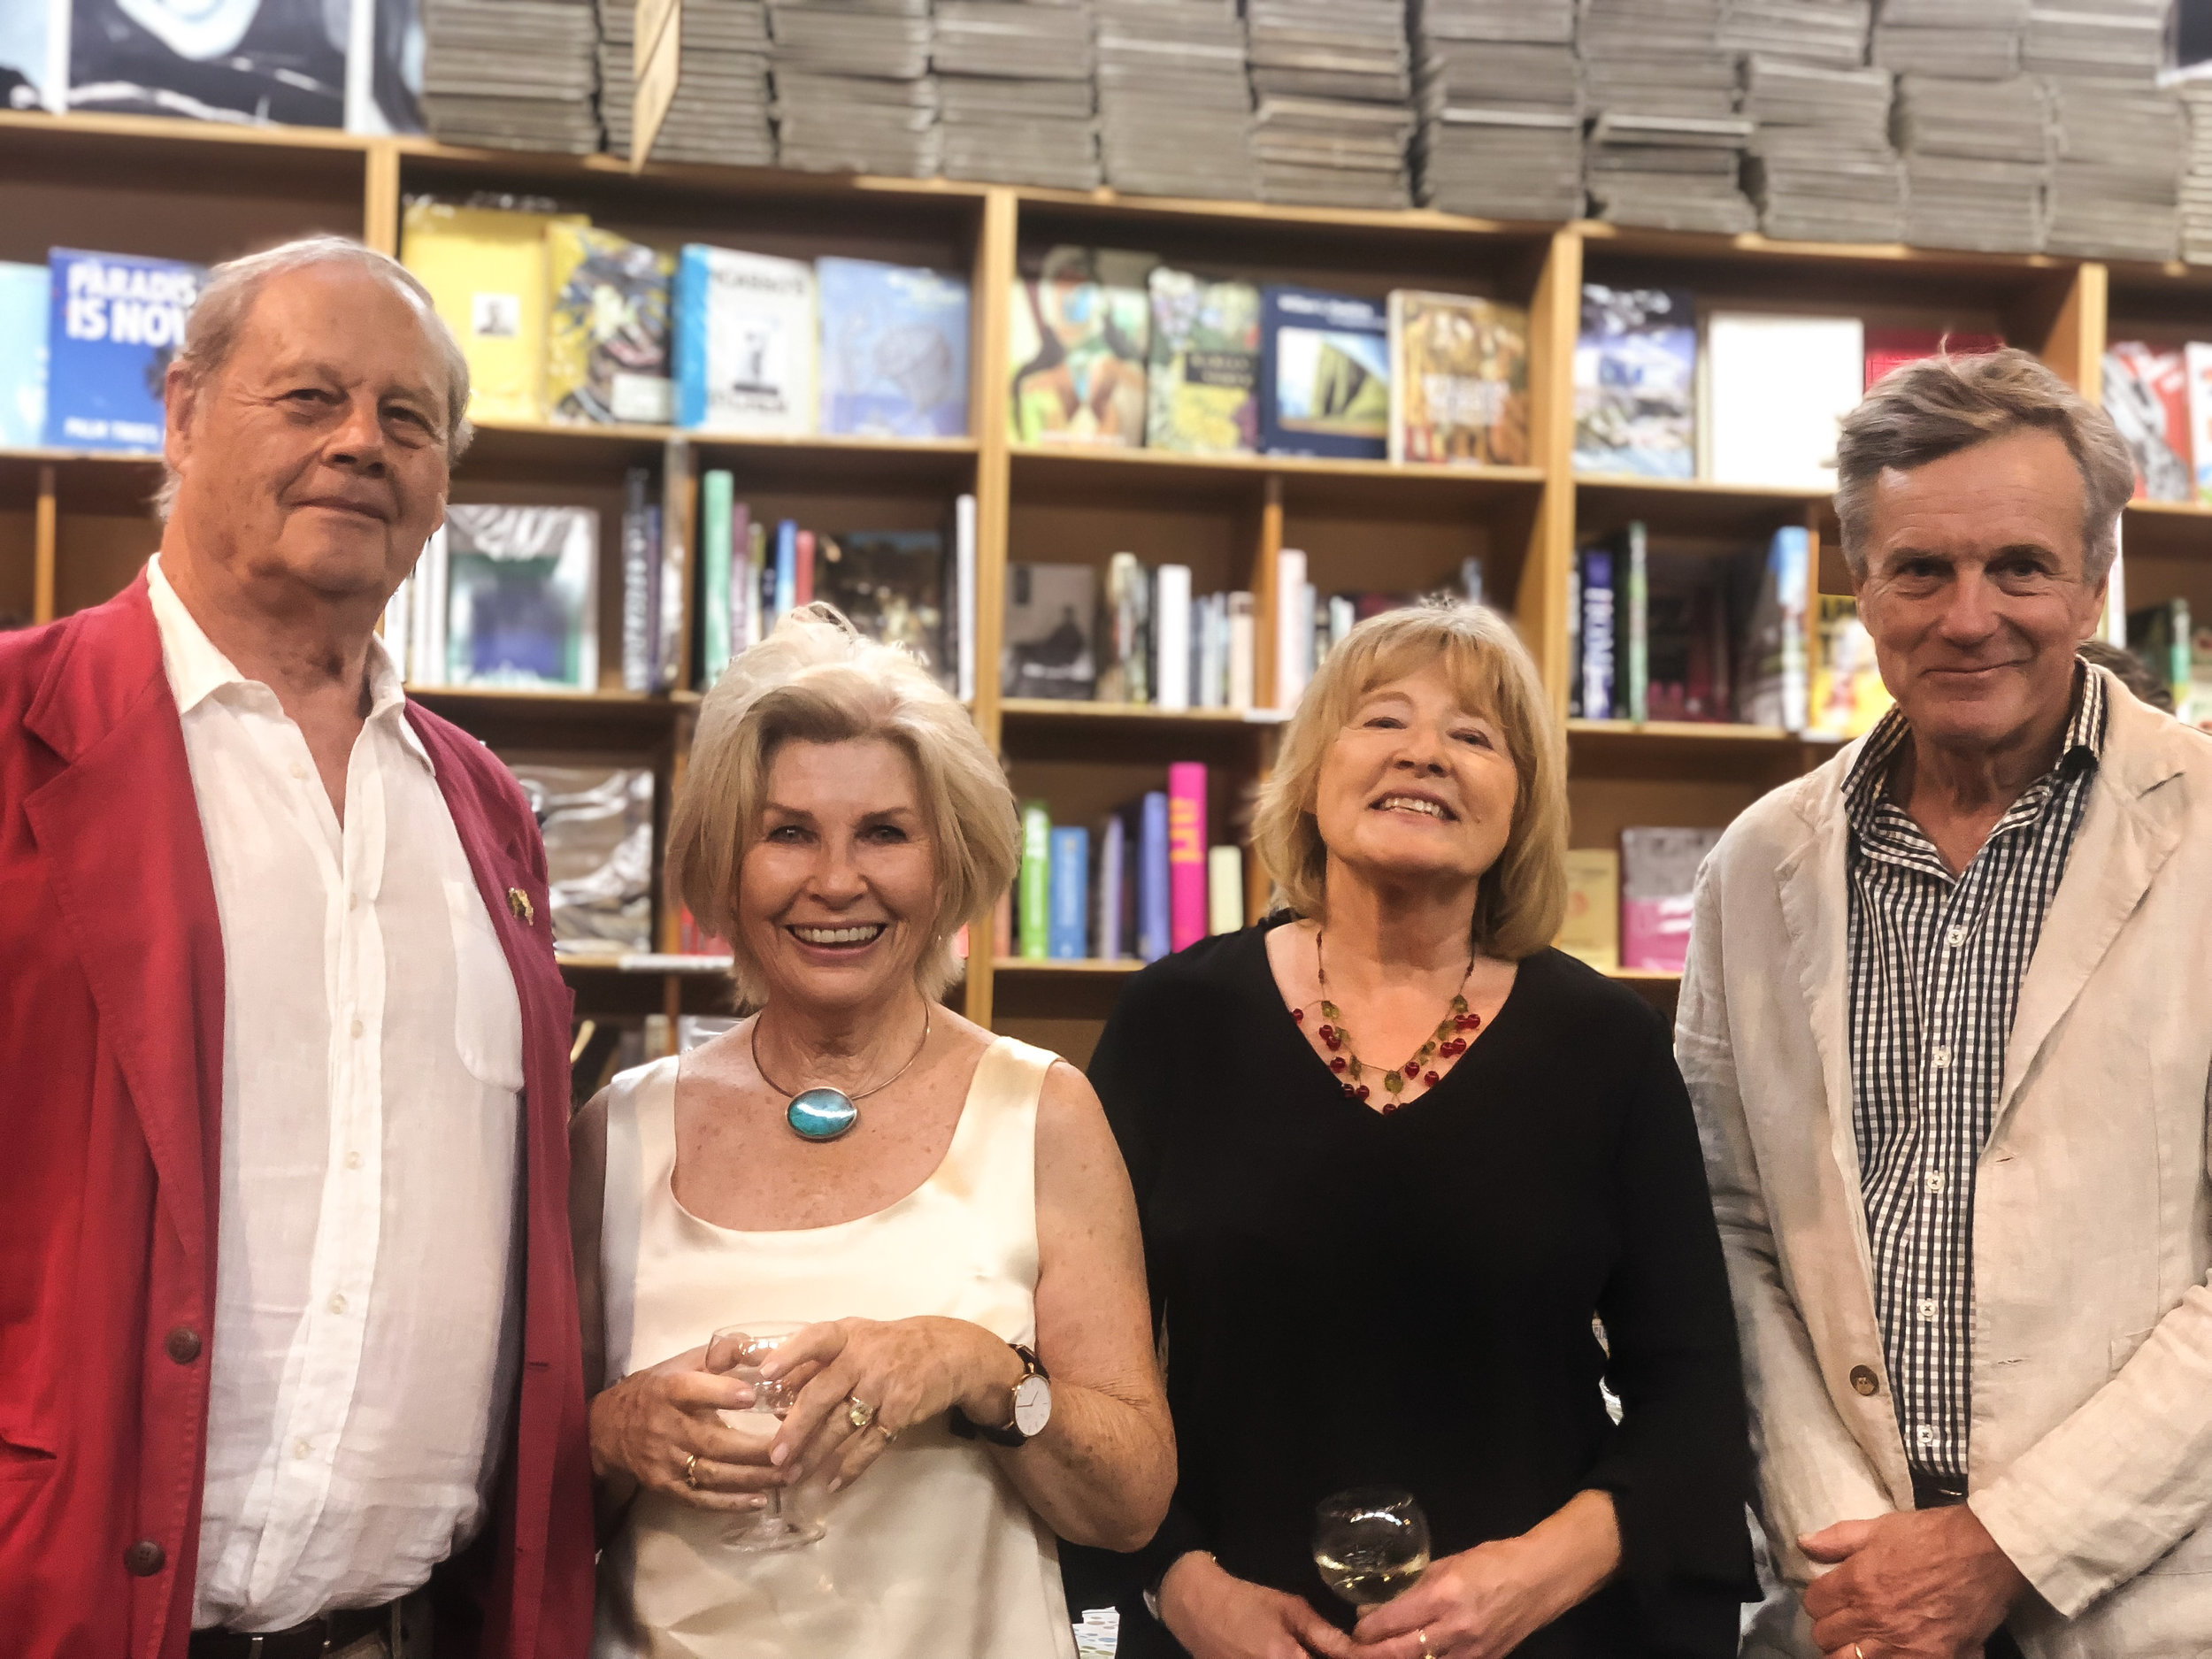 Bruce Beresford, Robyn Nevin, Virginia Duigan and Nicolas Hammond